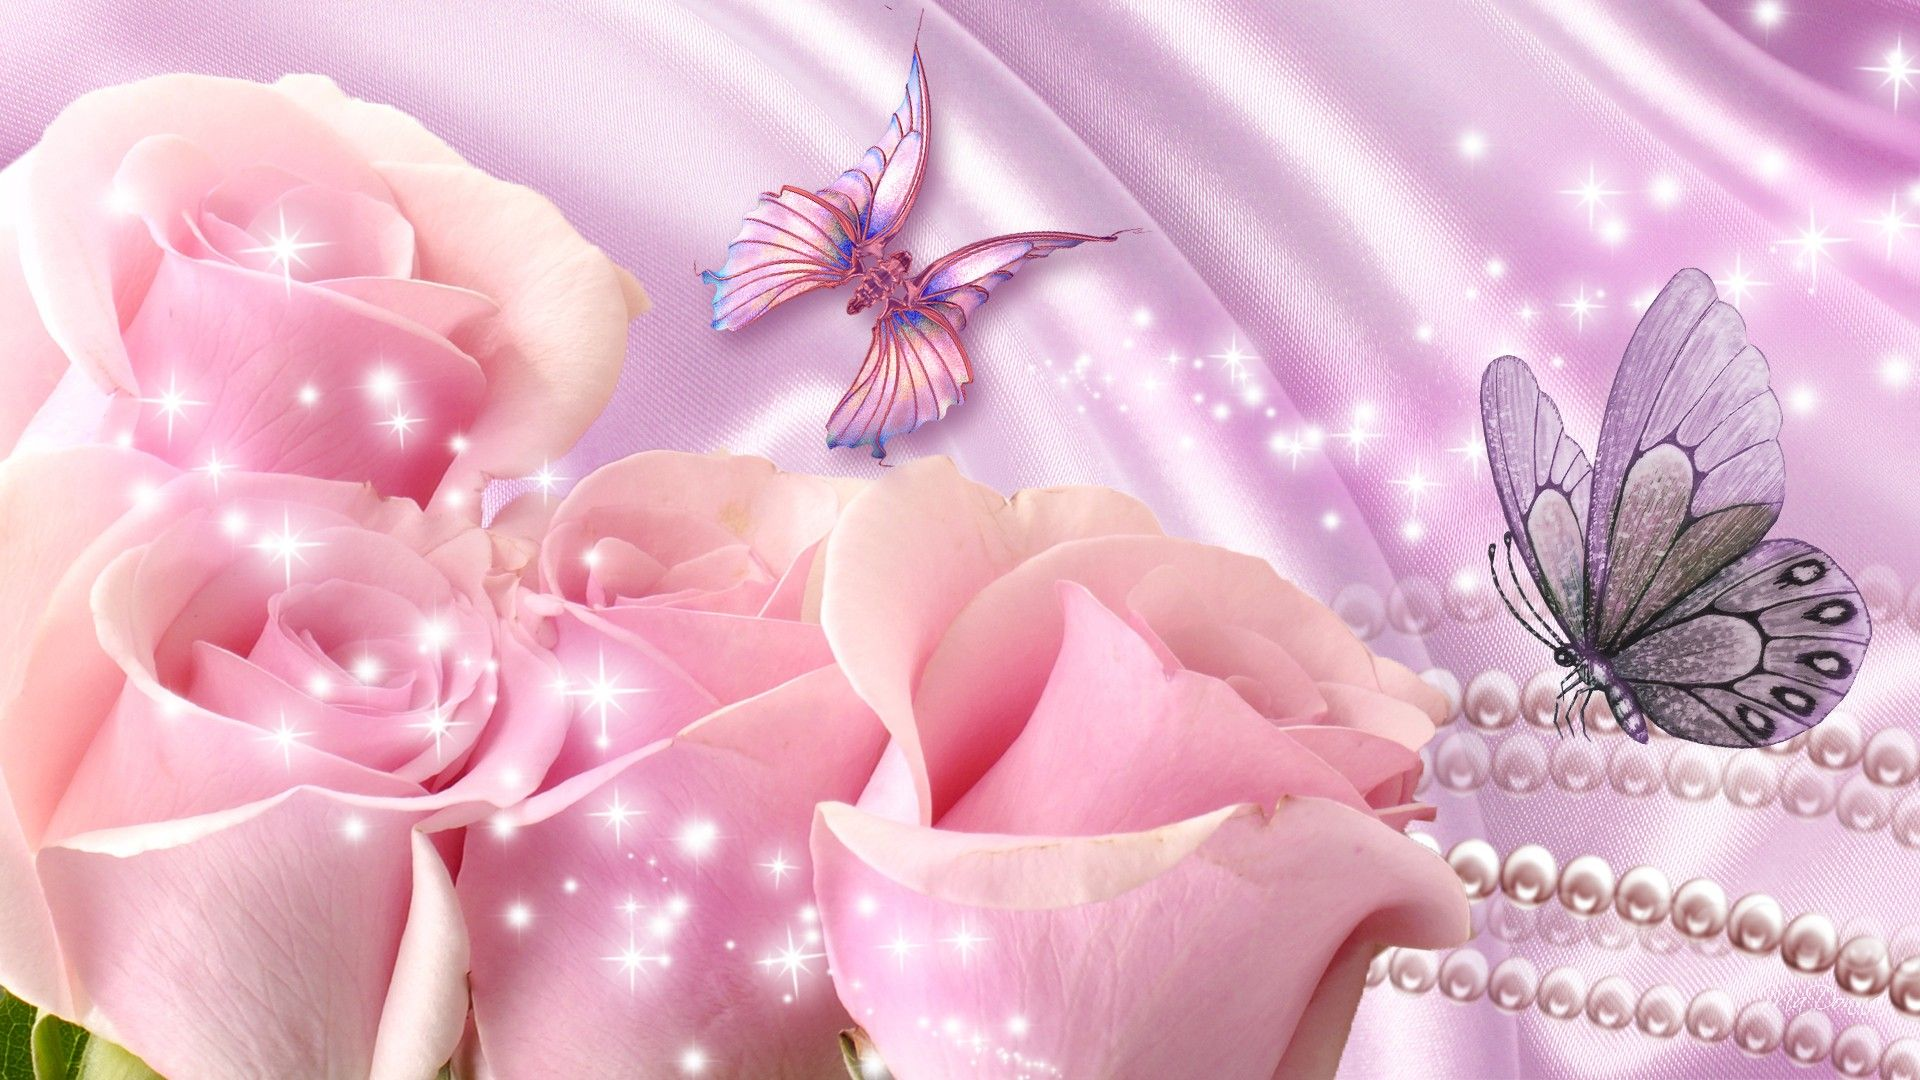 Butterflies With Pink Rose | Pink rose pictures